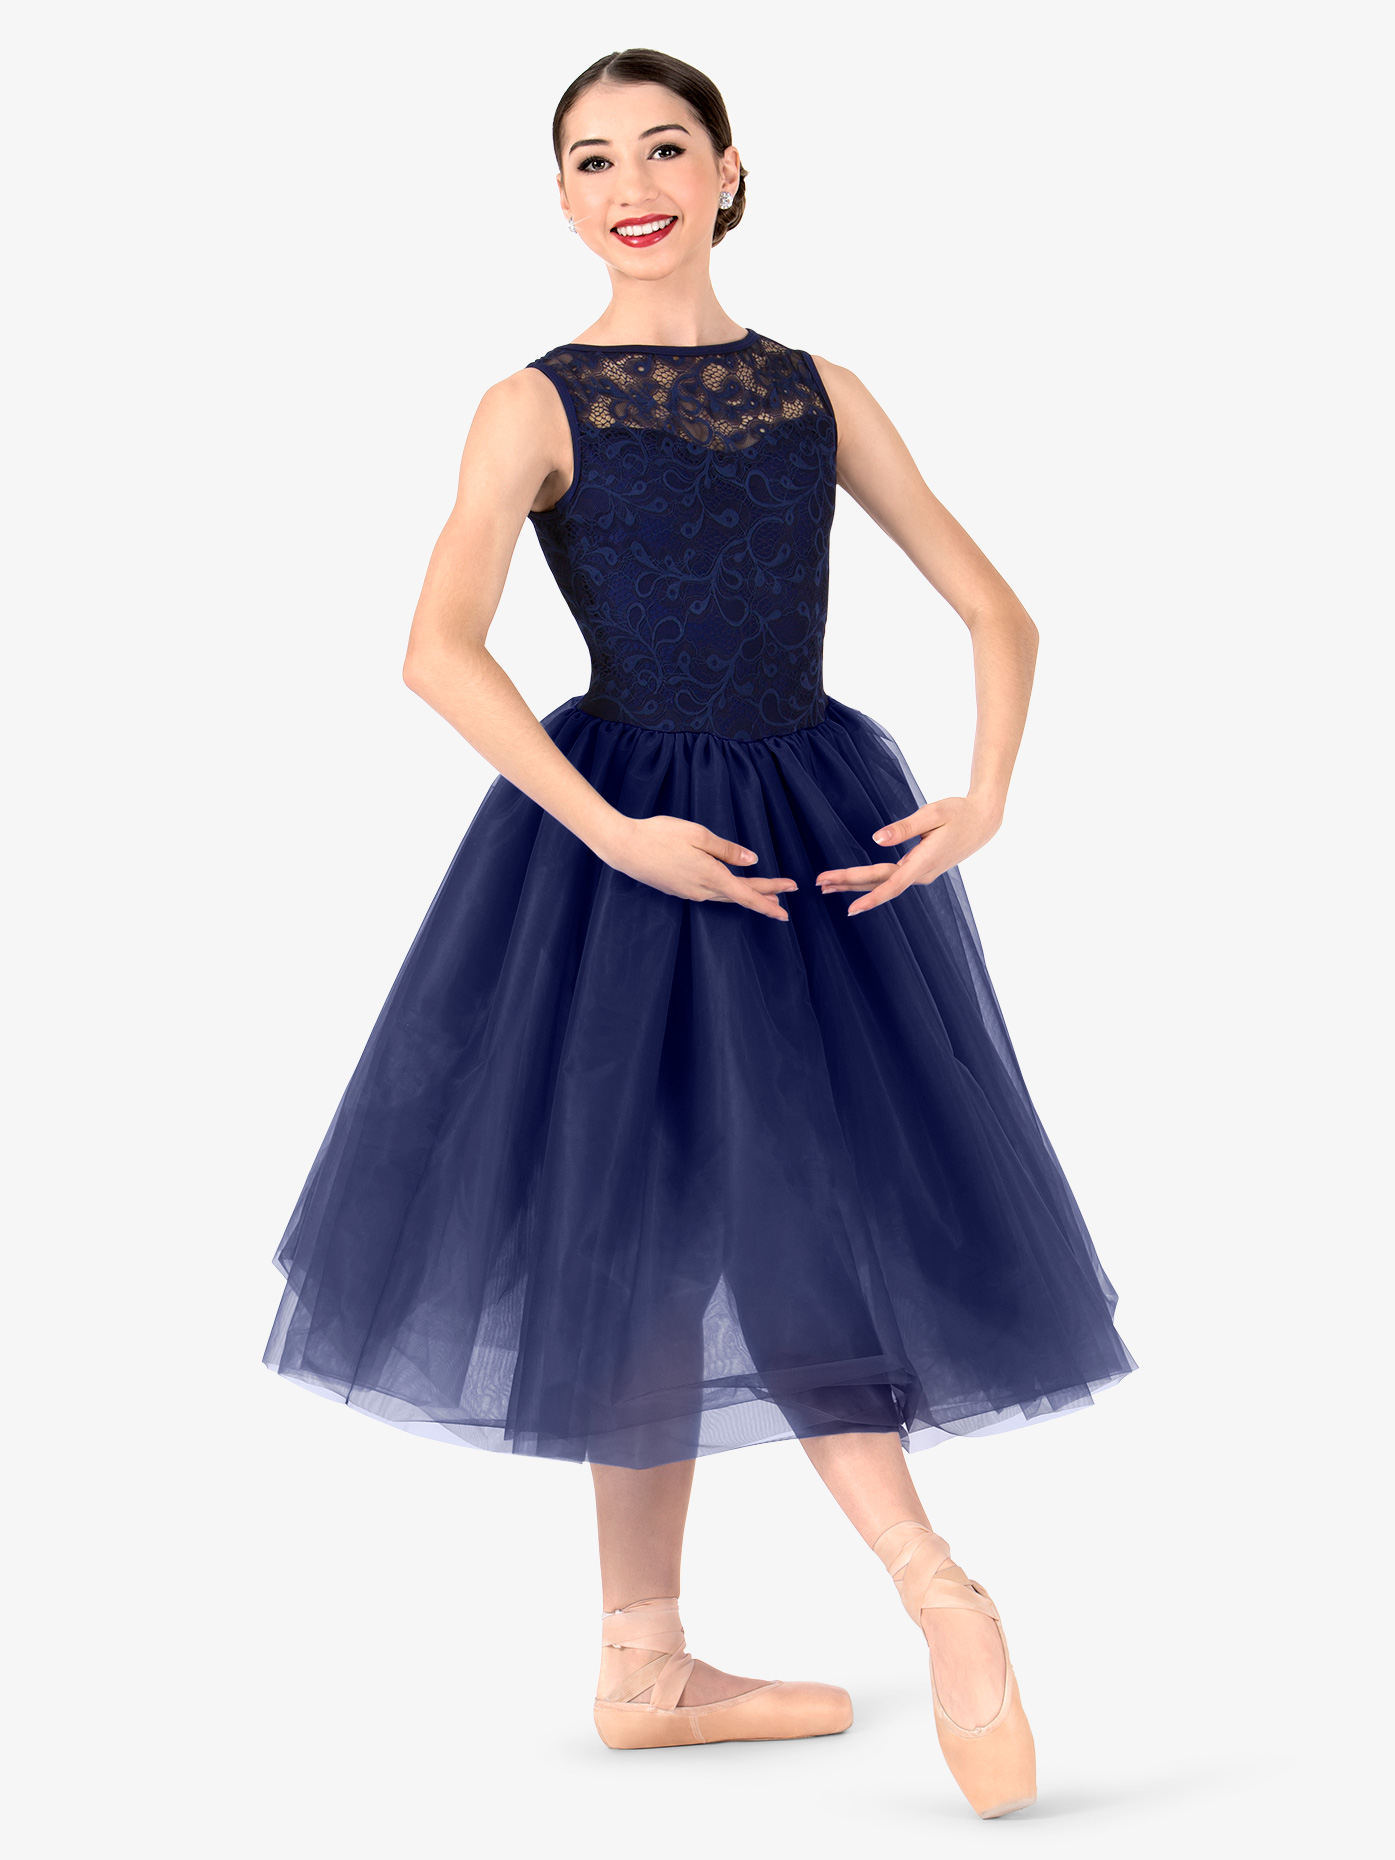 Elisse by Double Platinum Womens Lace Overlay Ballet Tutu Dress N7481